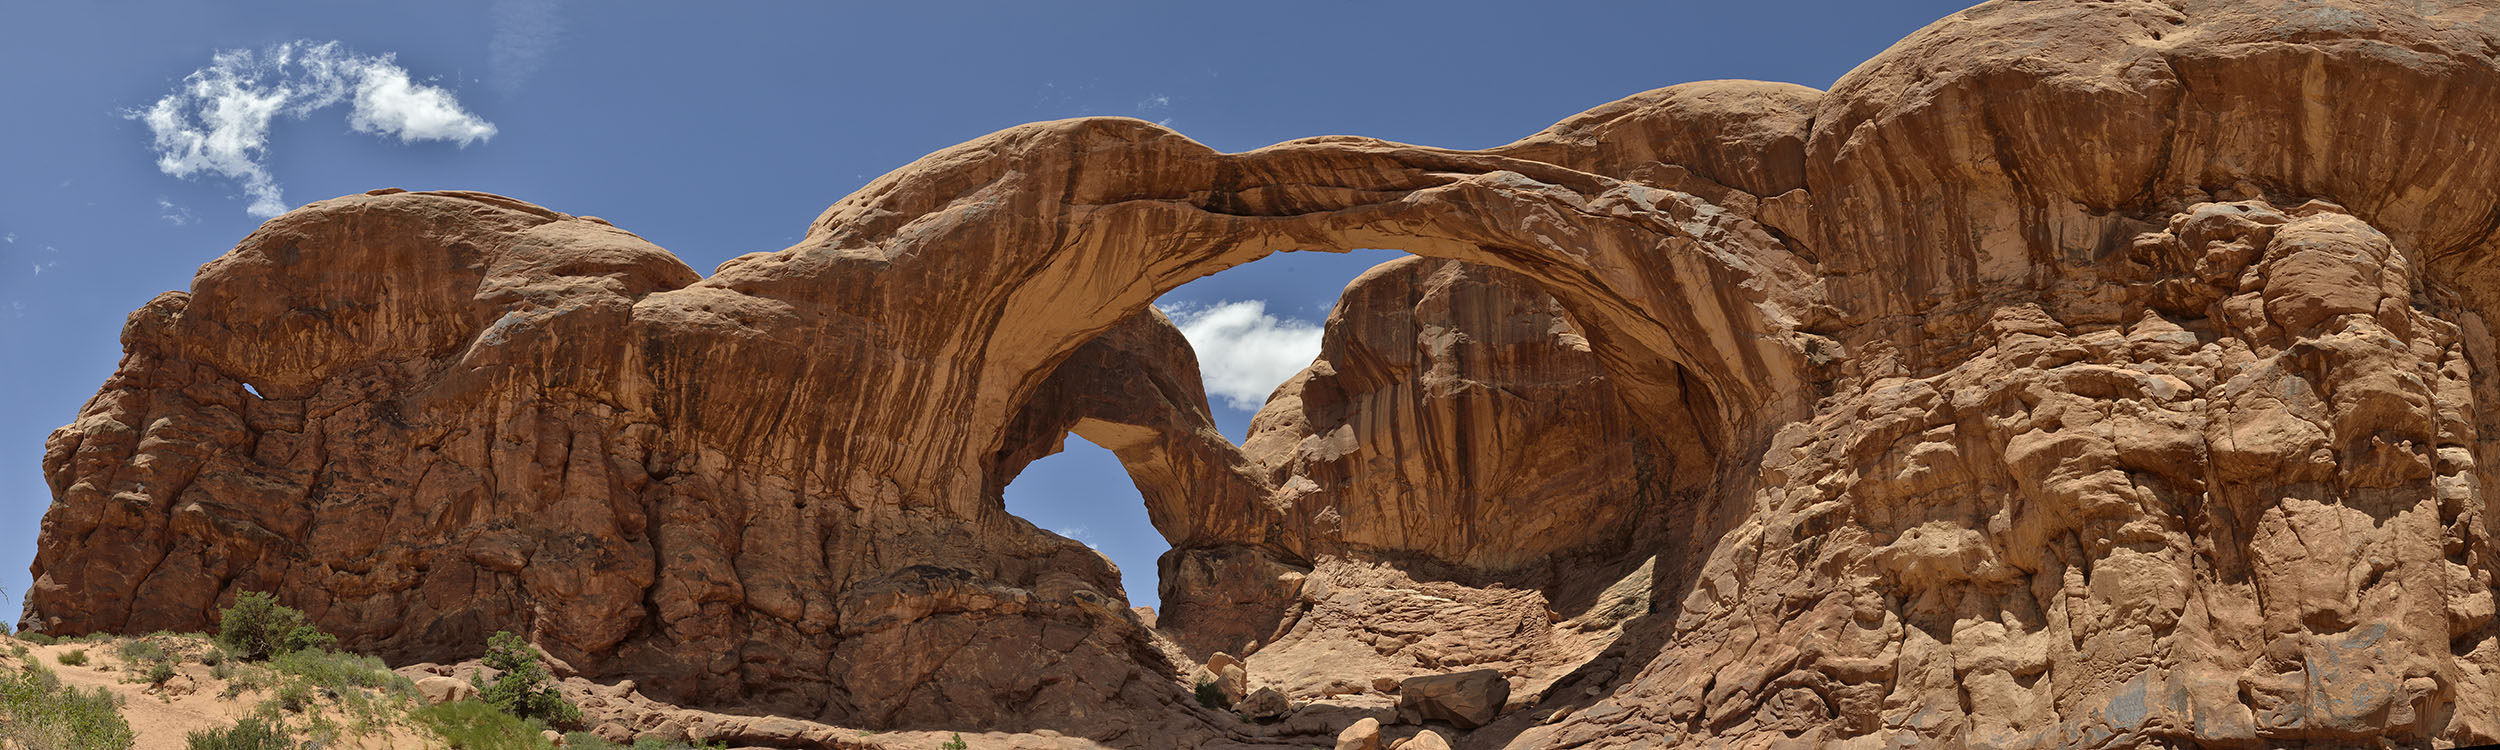 Double Arch, Arches NP